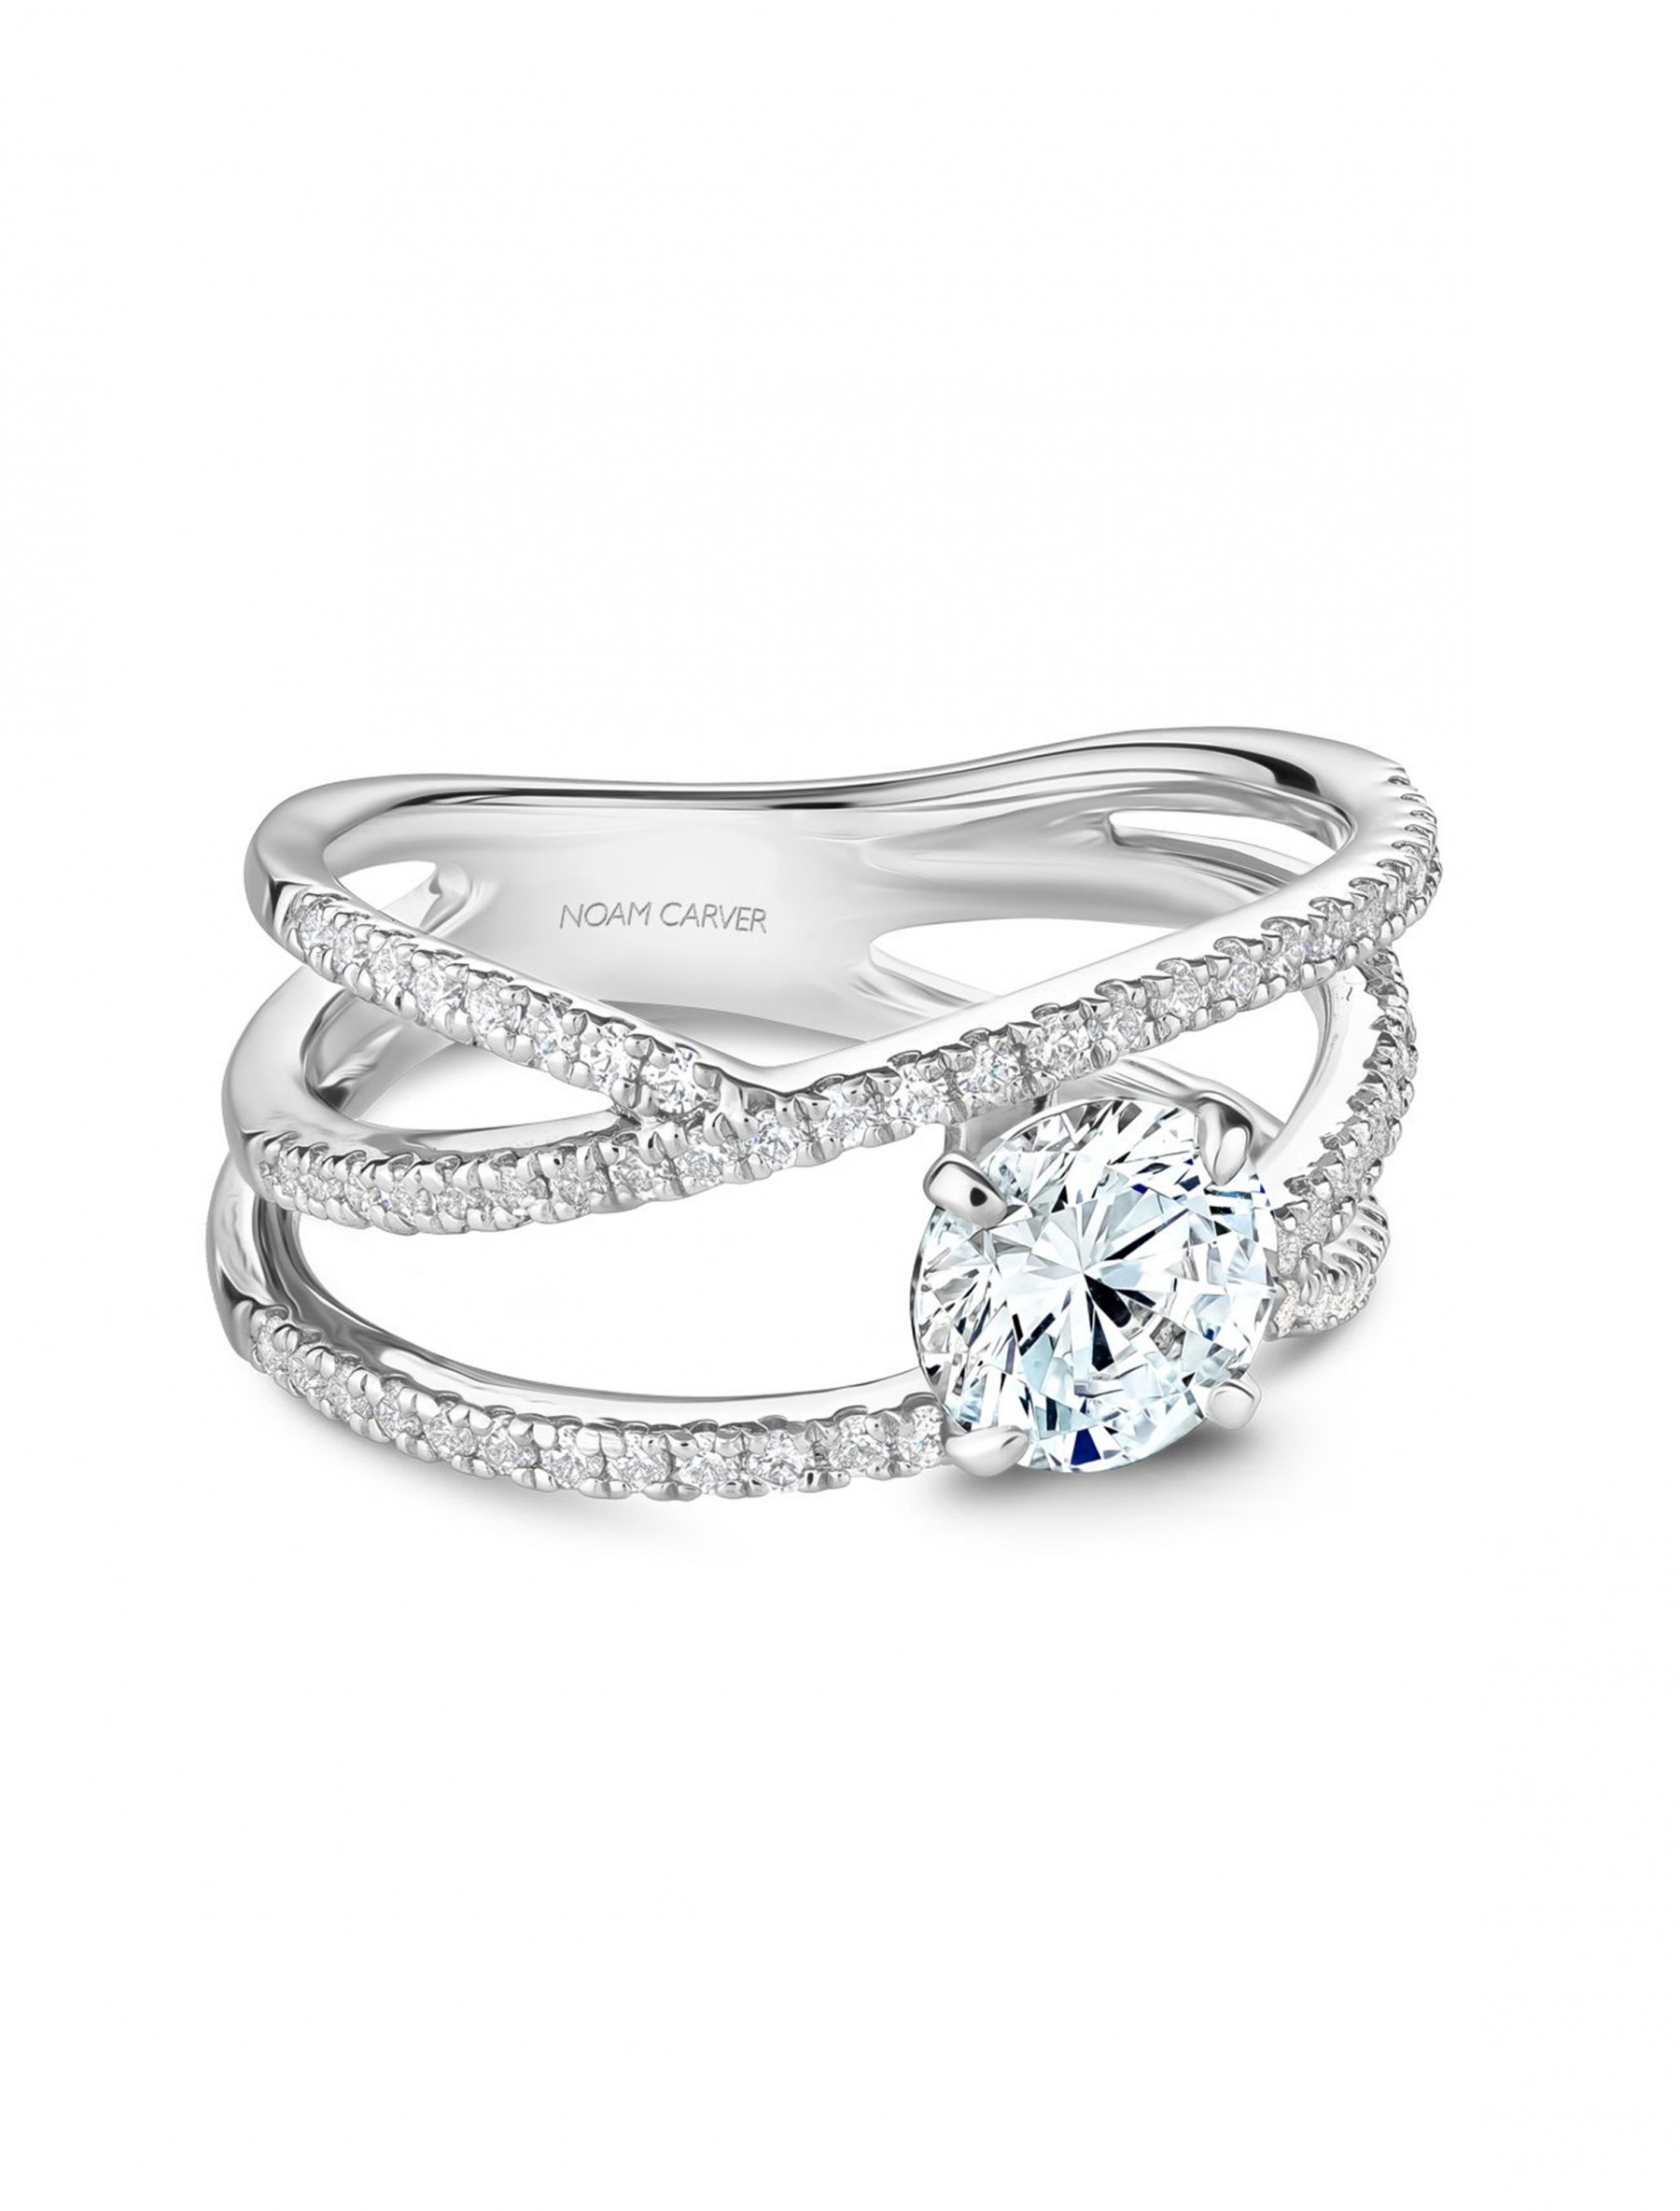 Noam Carver Round Pave Diamond Crossover Engagement Ring Setting front view